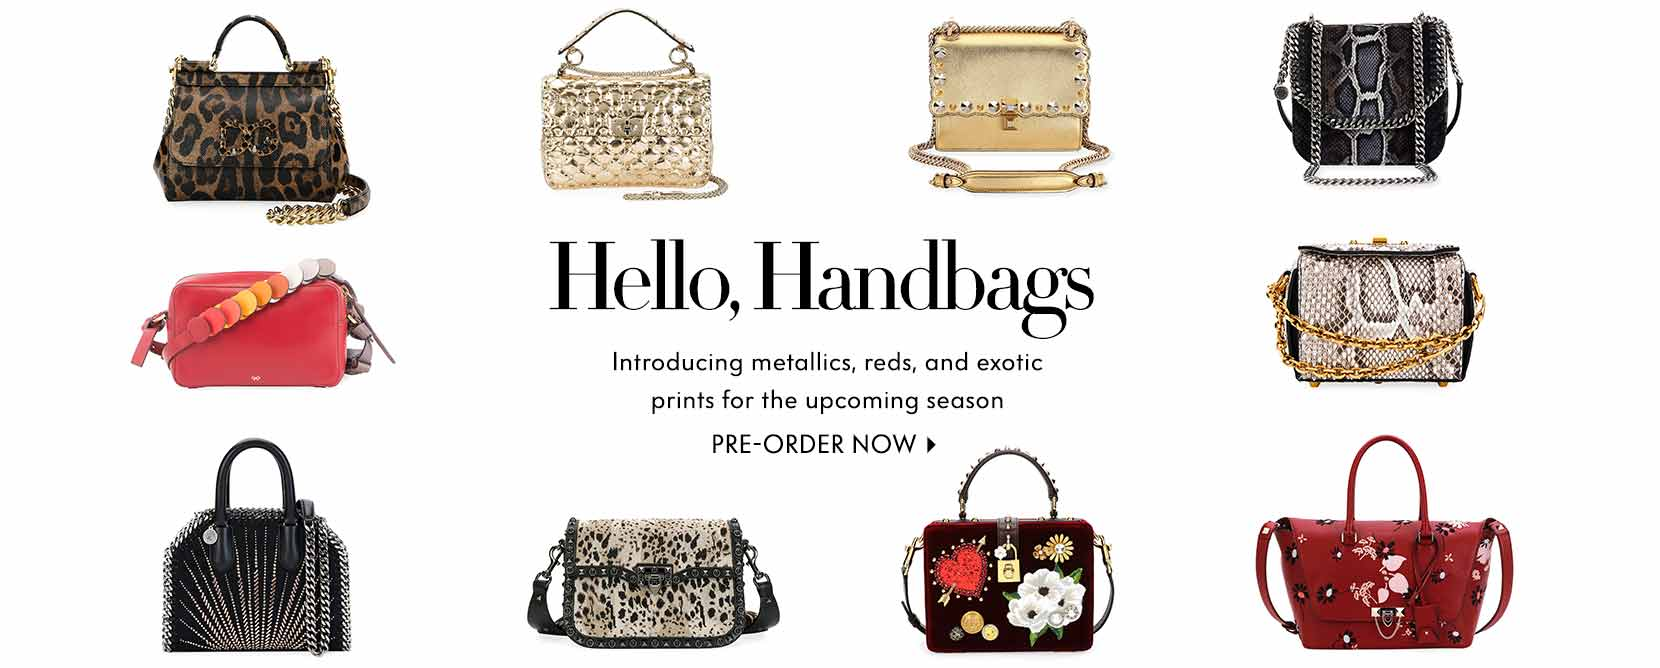 Hello, Handbags introducing metallics, reds, and exotic prints for the upcoming season! Pre-order now